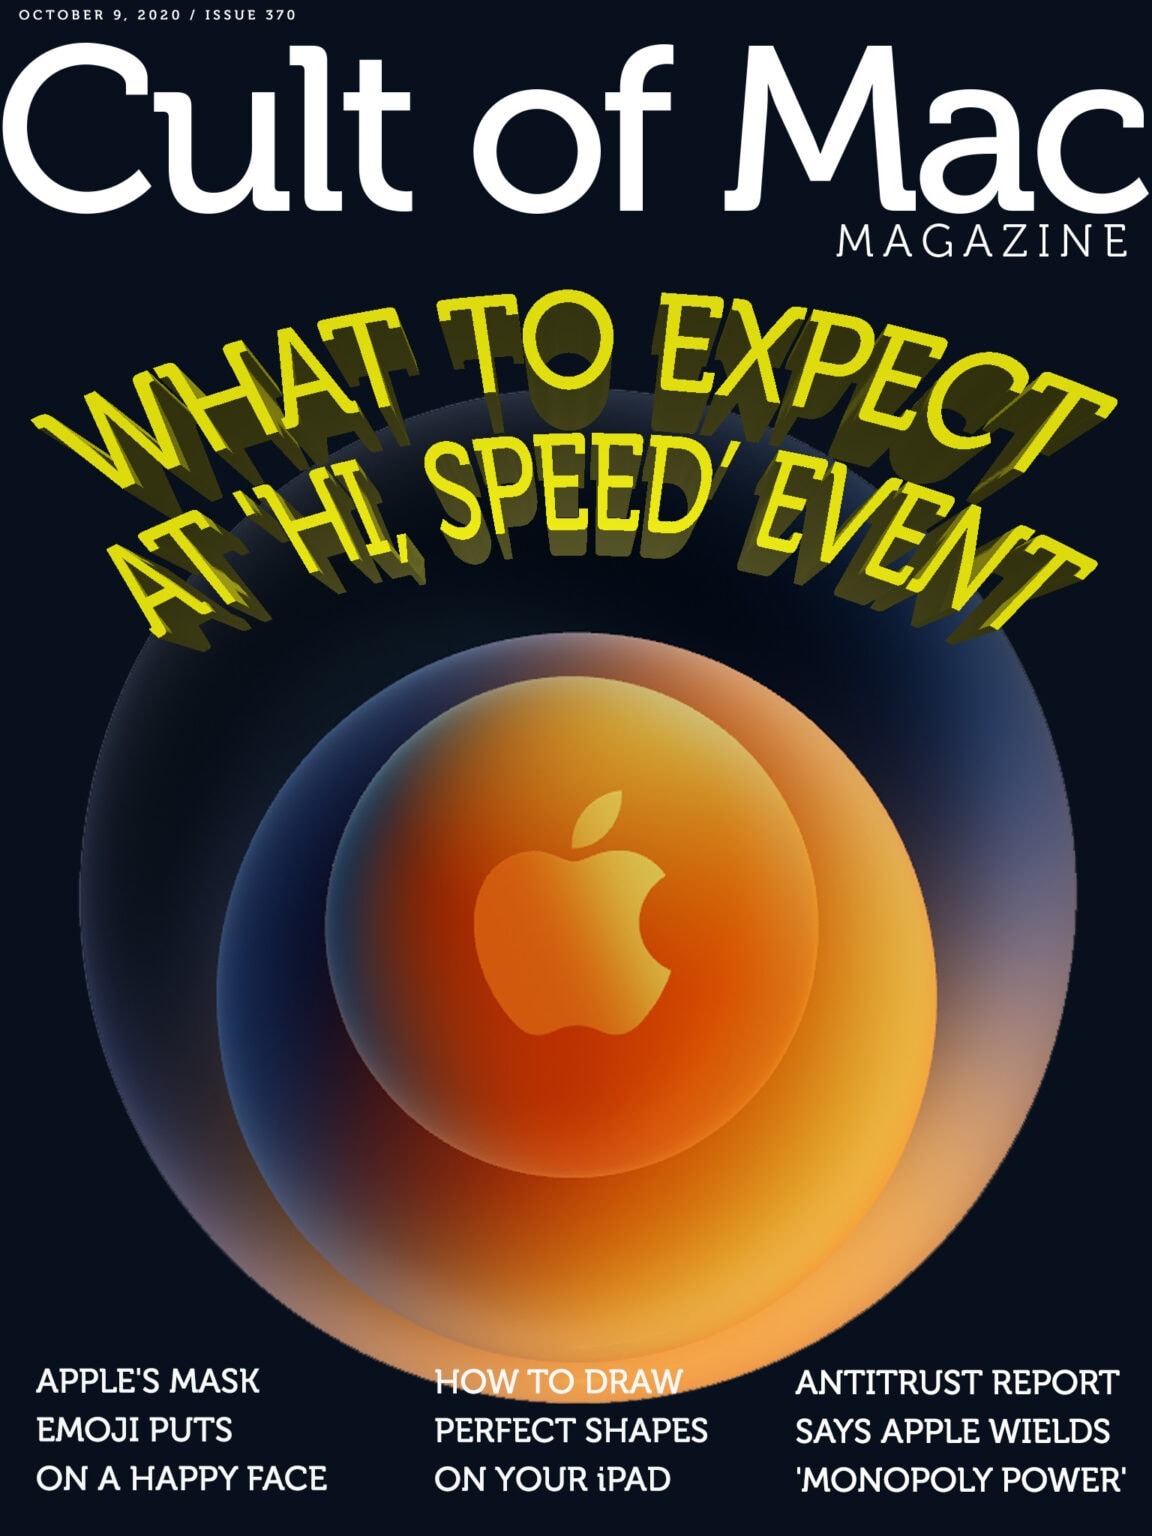 Apple Hi, Speed event preview: Get a sneak peek at what's popping out of Apple's magic pipeline next week.